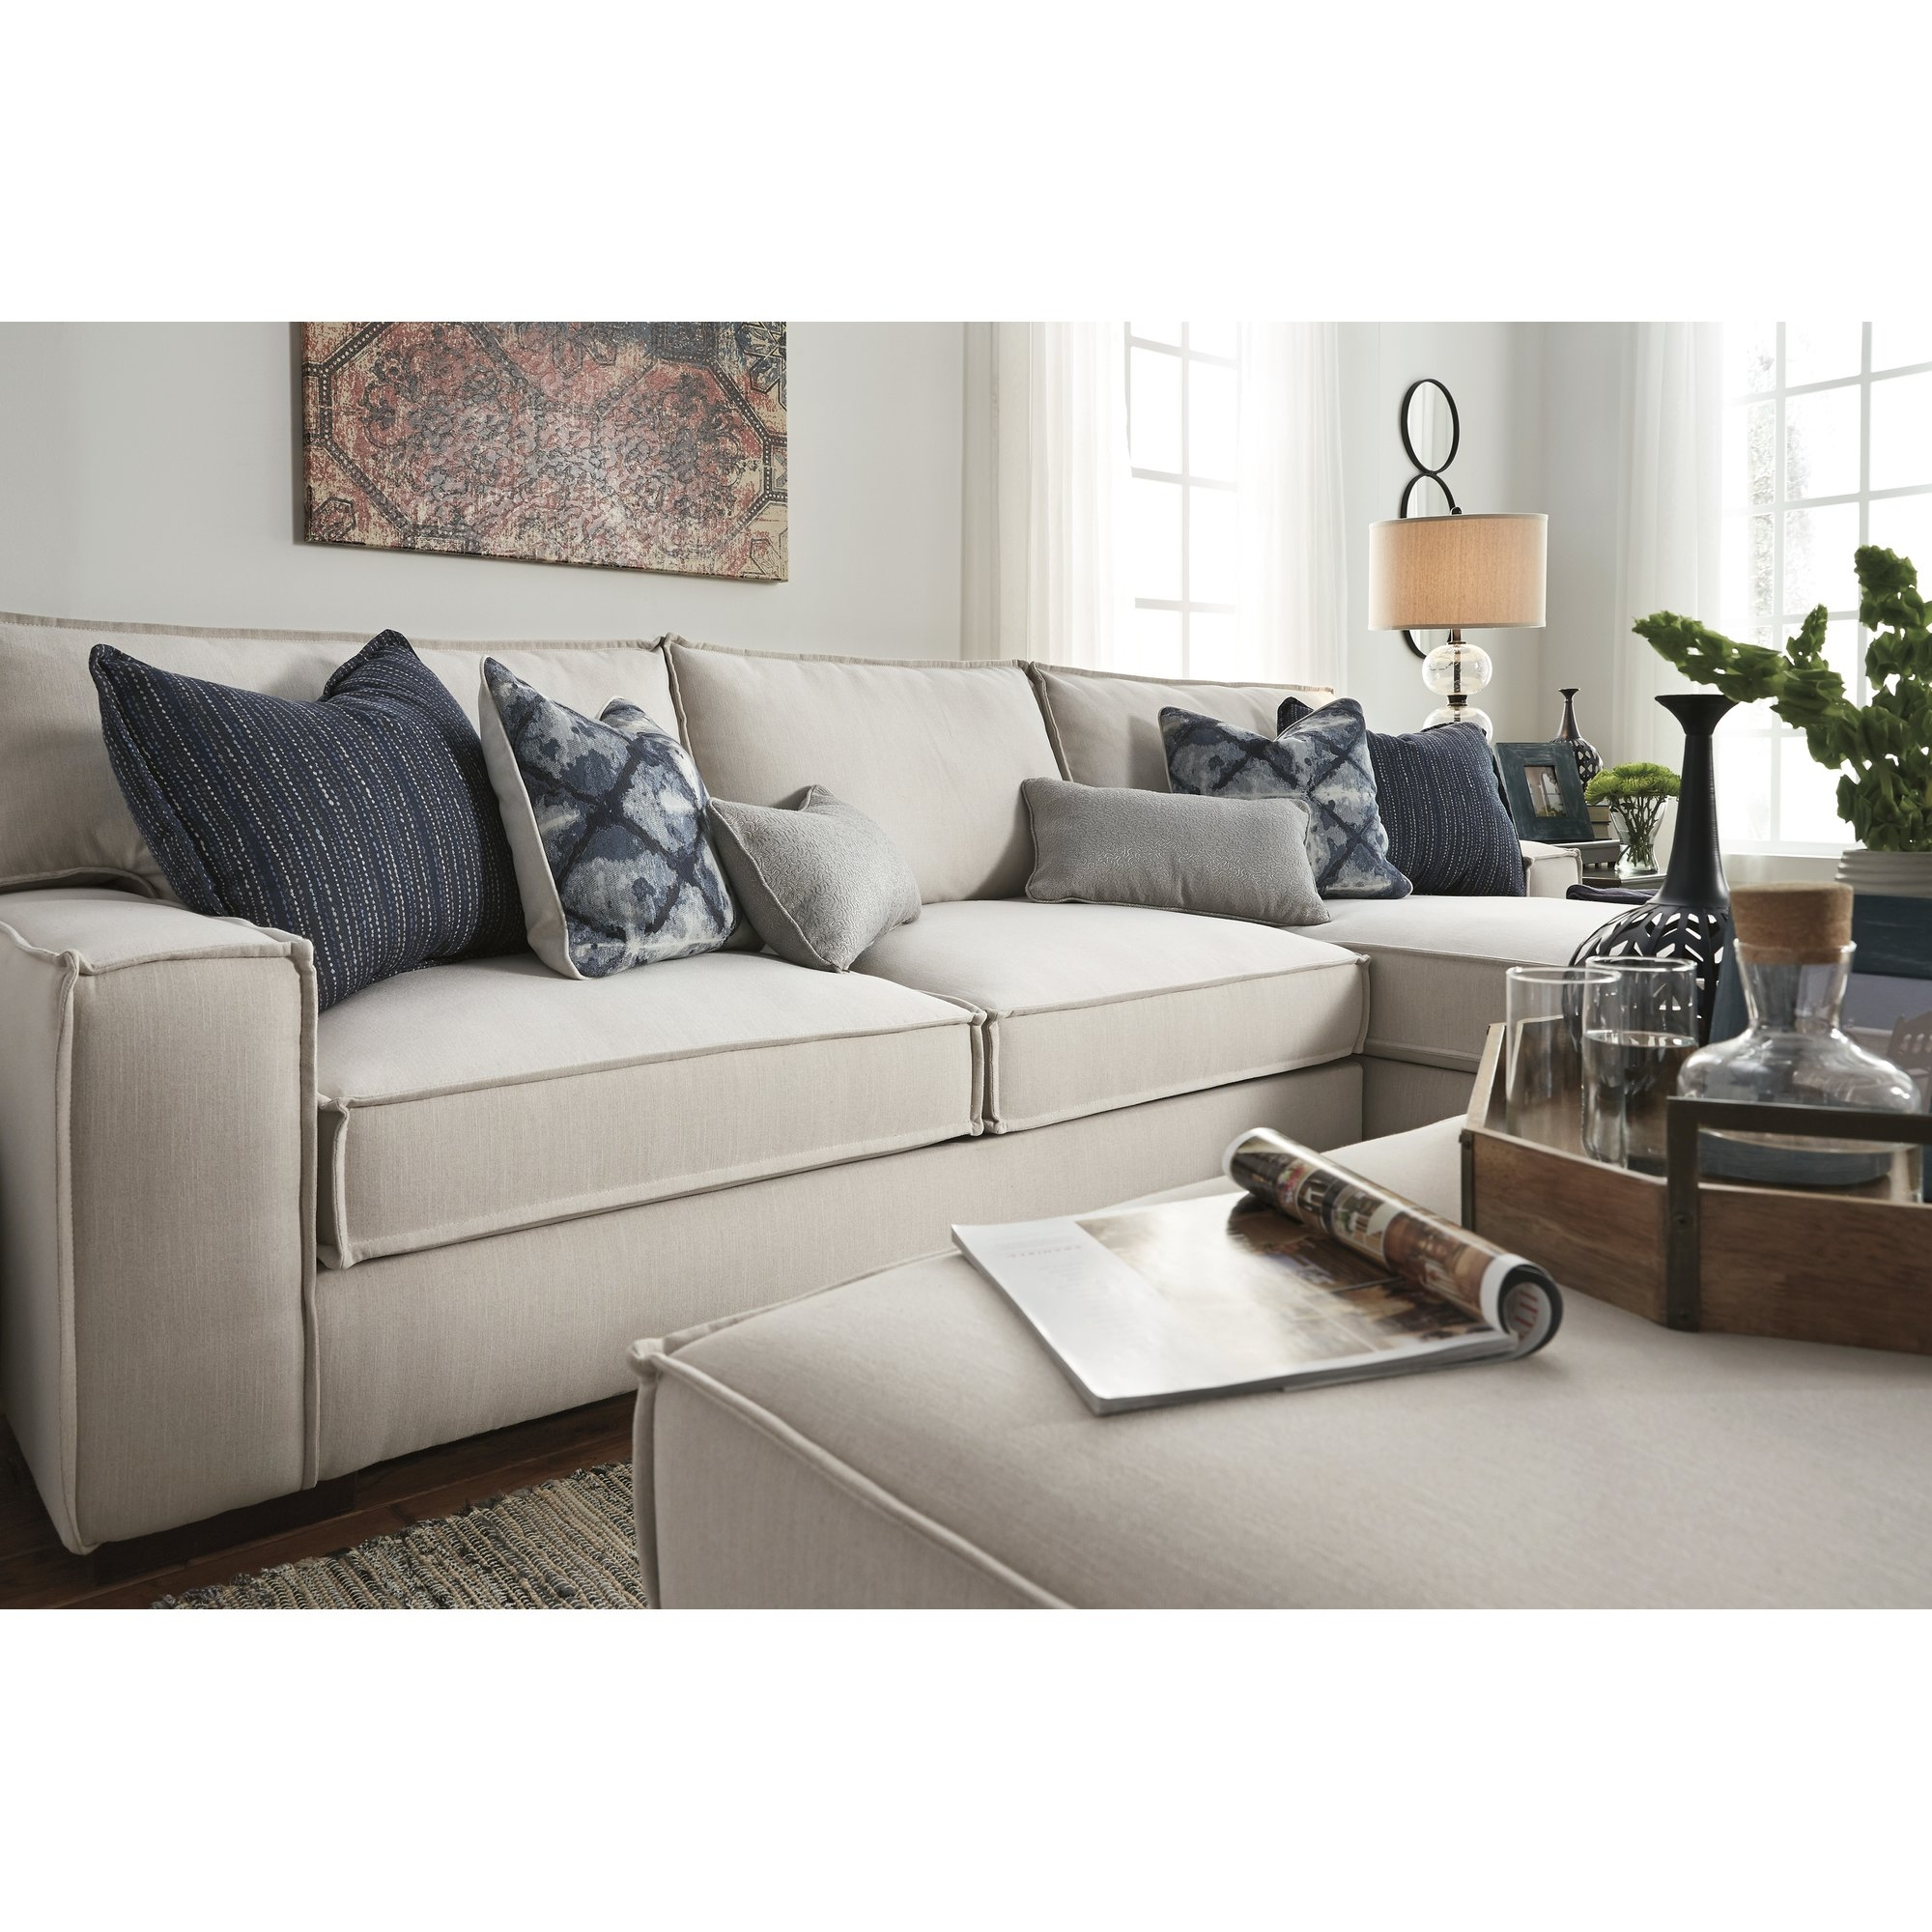 Sectionals Sectional Sofas Joss Main In Closeout Sectional Sofas (View 14 of 15)